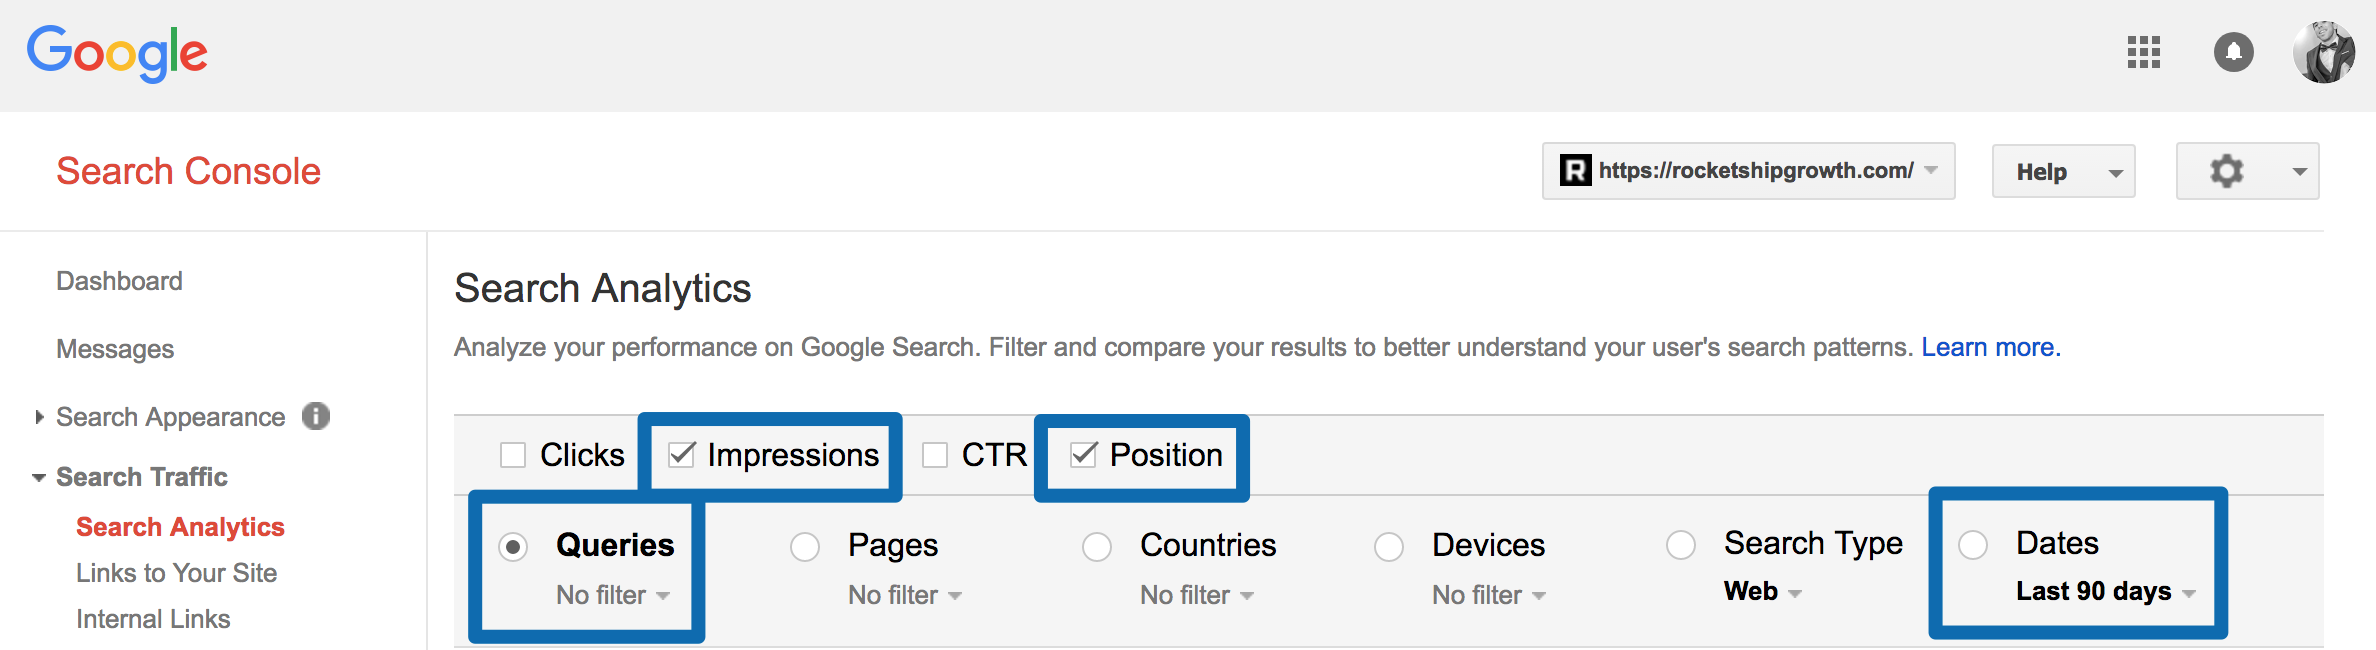 Screenshot showing an analytics search on the Google search console